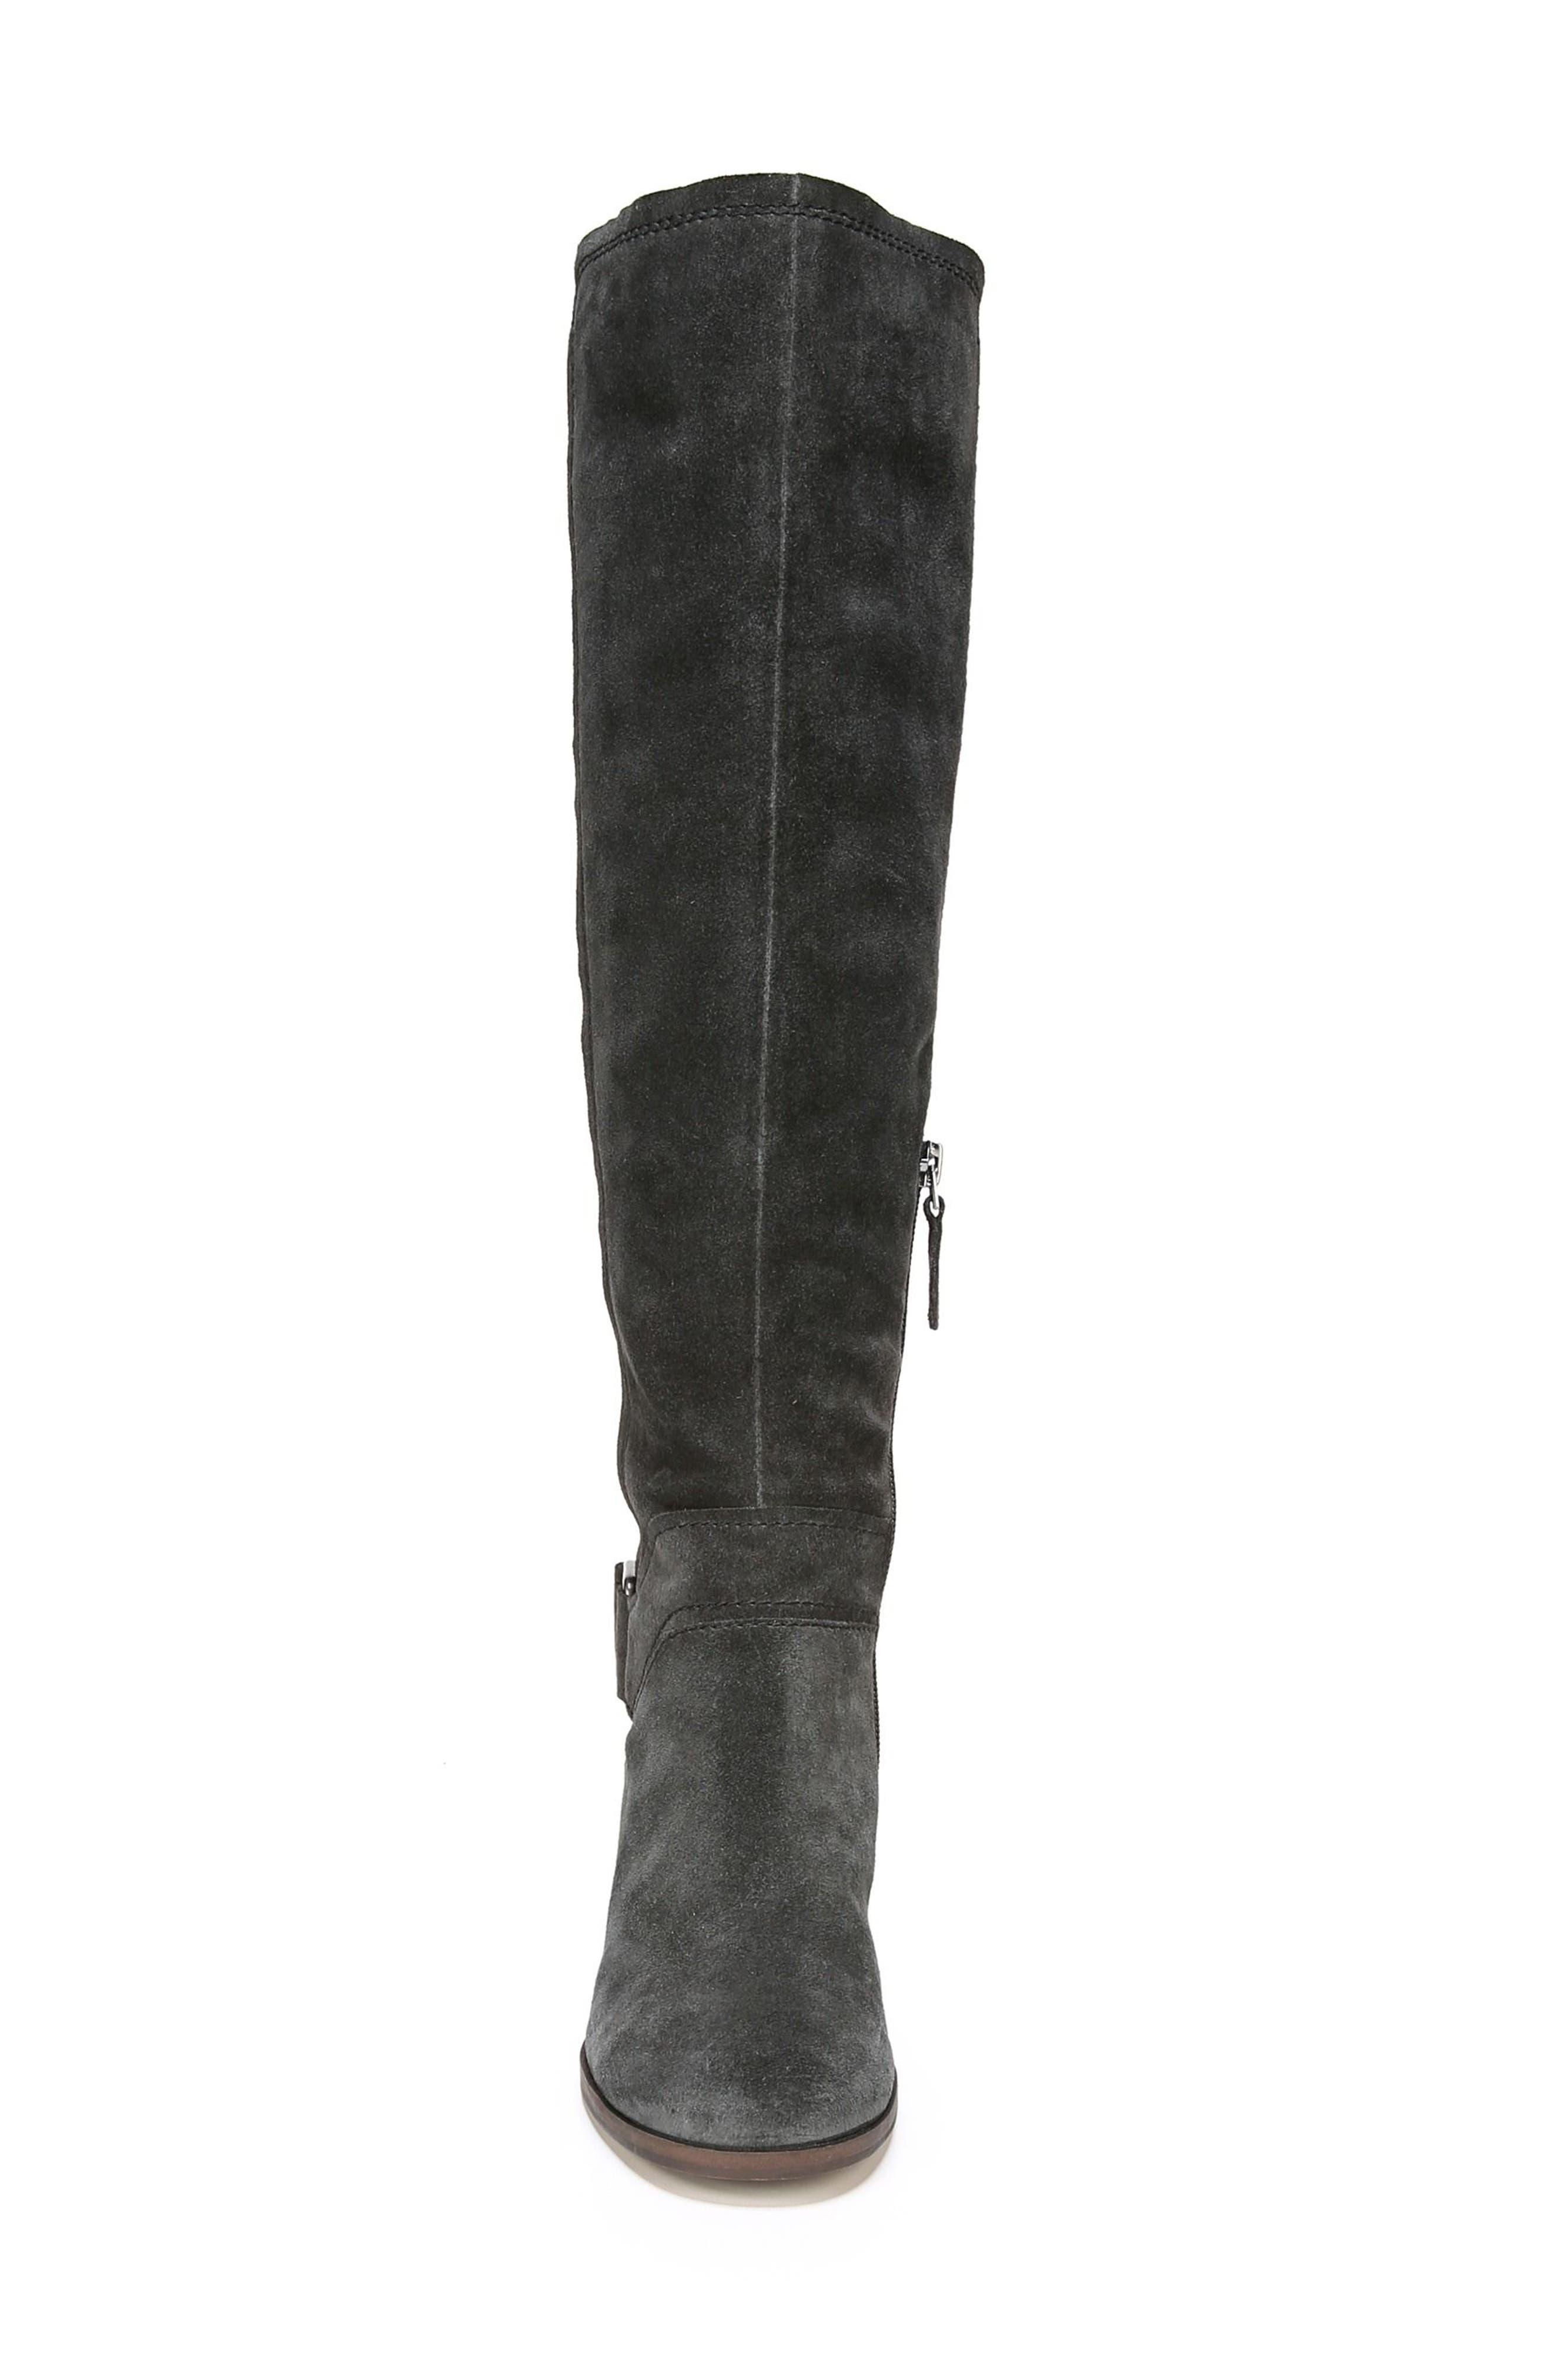 Mystic Knee High Boot,                             Alternate thumbnail 4, color,                             Coal Suede